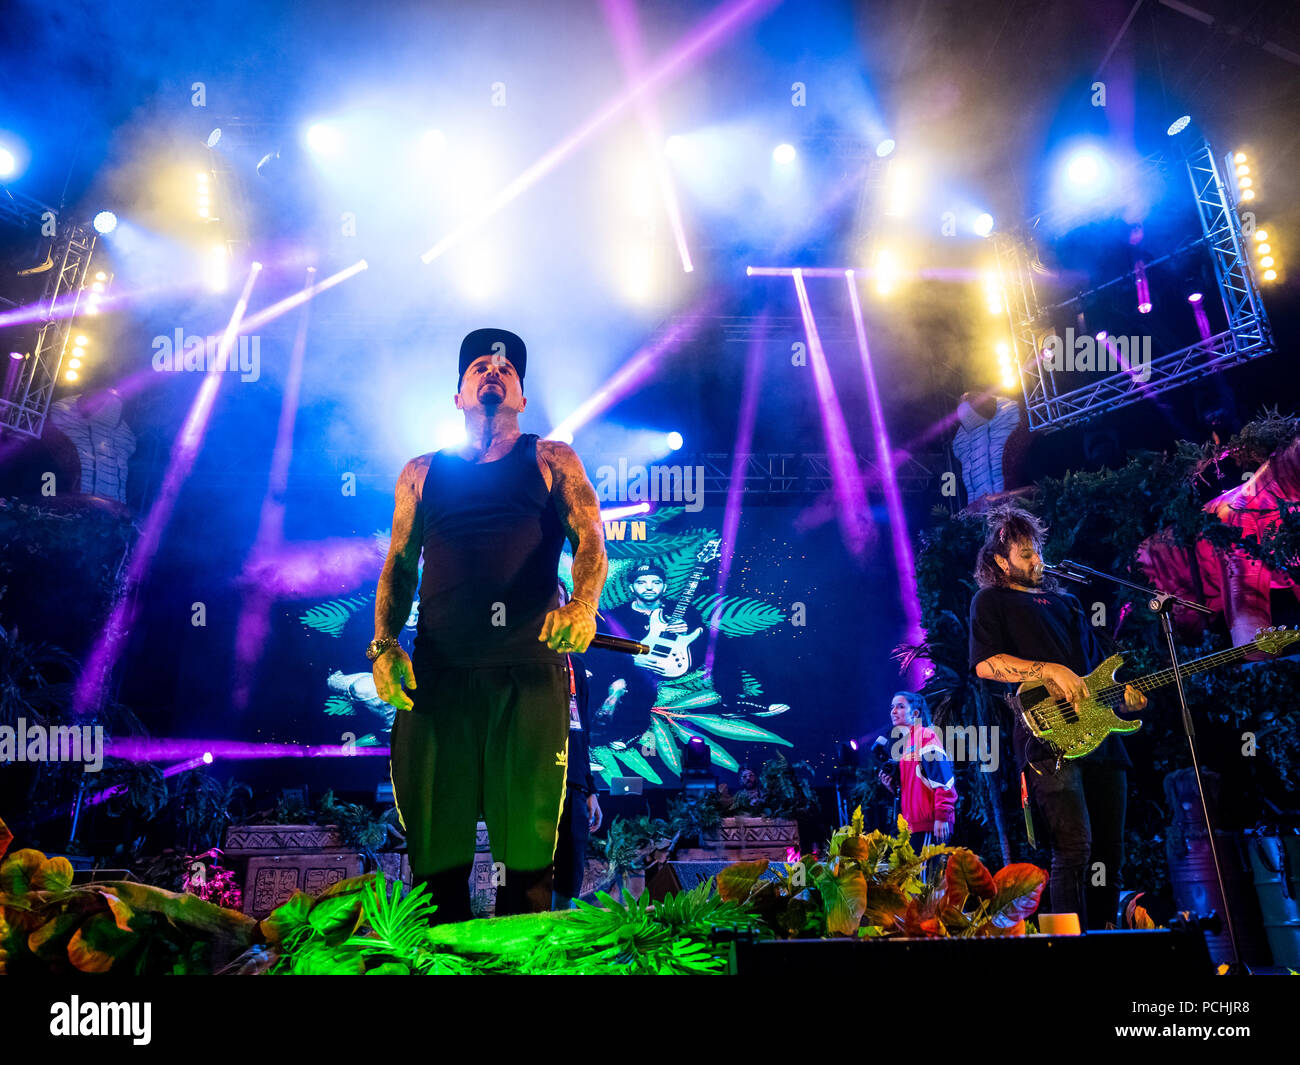 Shifty Shellshock of band Crazy Town performing live on the 3rd day of Rock in Rio Lisboa 2018 at Parque da Bela Vista in Lisboa  Featuring: Shifty Shellshock Where: Lisbon, Portugal When: 29 Jun 2018 Credit: Rui M Leal/WENN.com - Stock Image